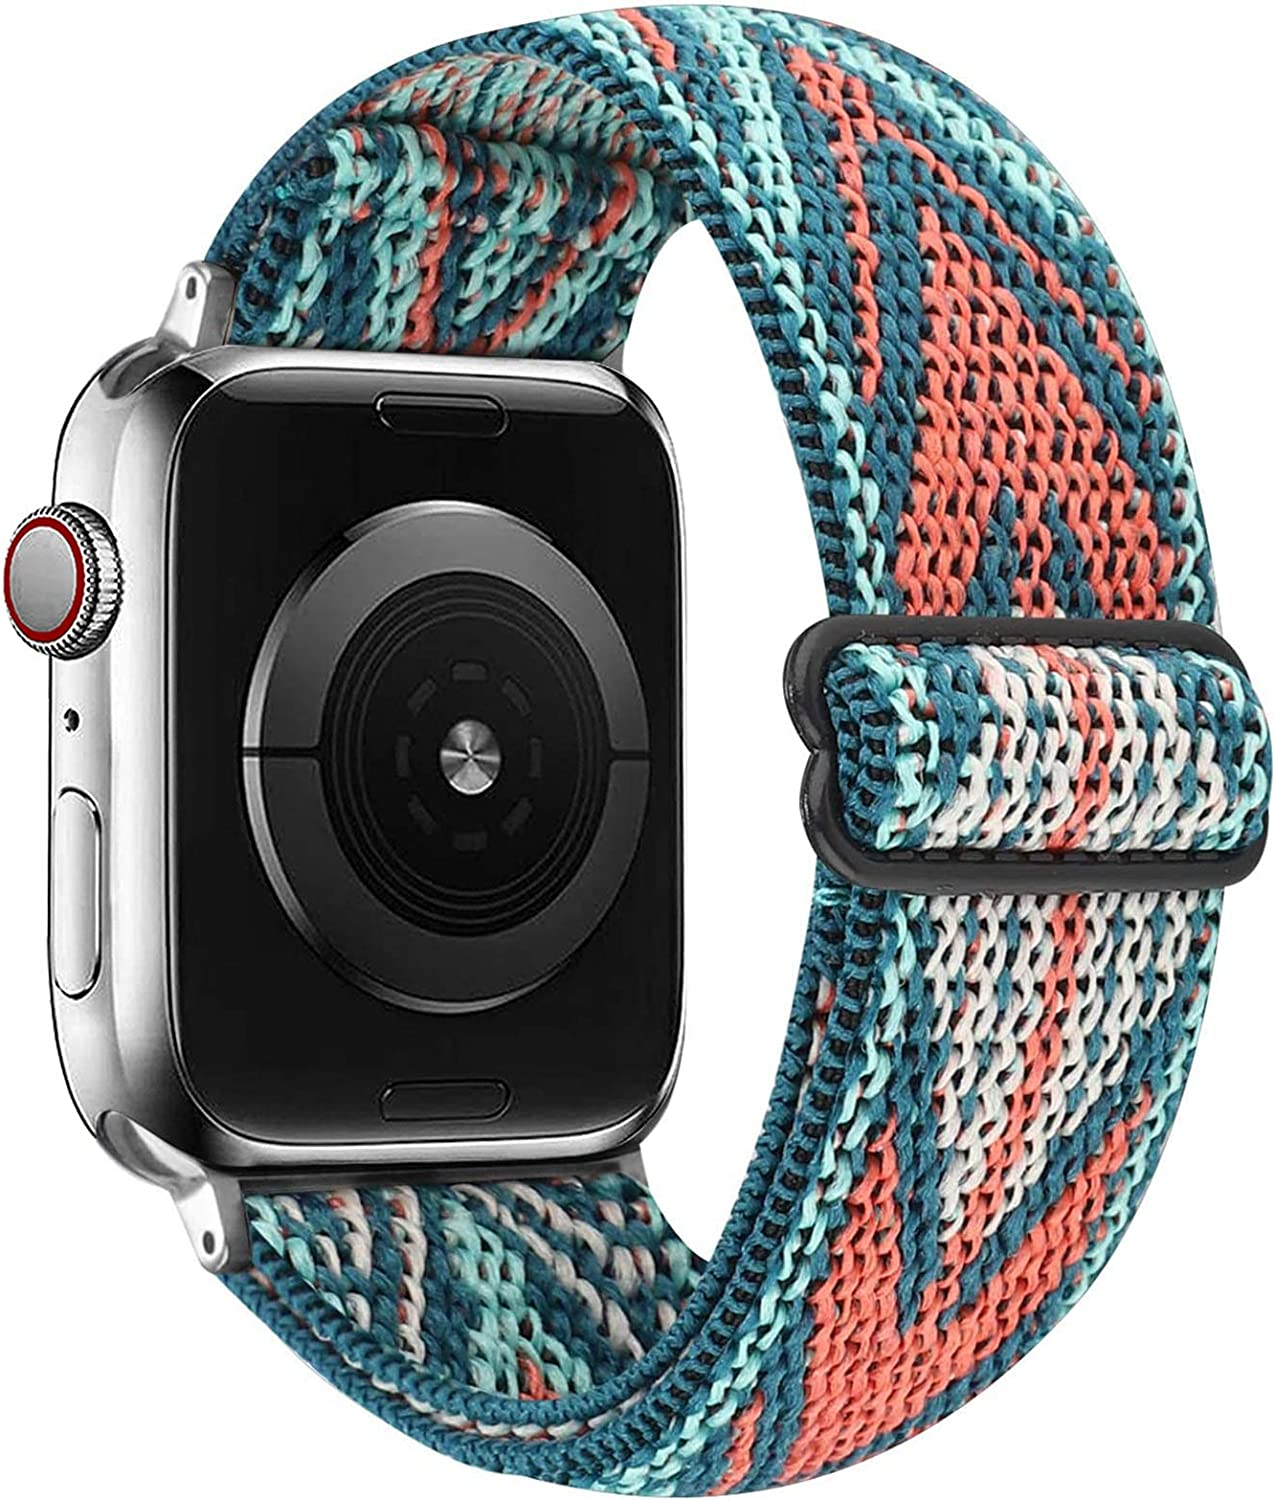 VISOOM Stretchy Band Compatible with Apple Watch band 38mm 40mm 42mm 44mm-Apple Watch Strap for iWatch Series 6/SE/5/4/3/2/1 Accessories Elastics Sports Replacement for Men Women